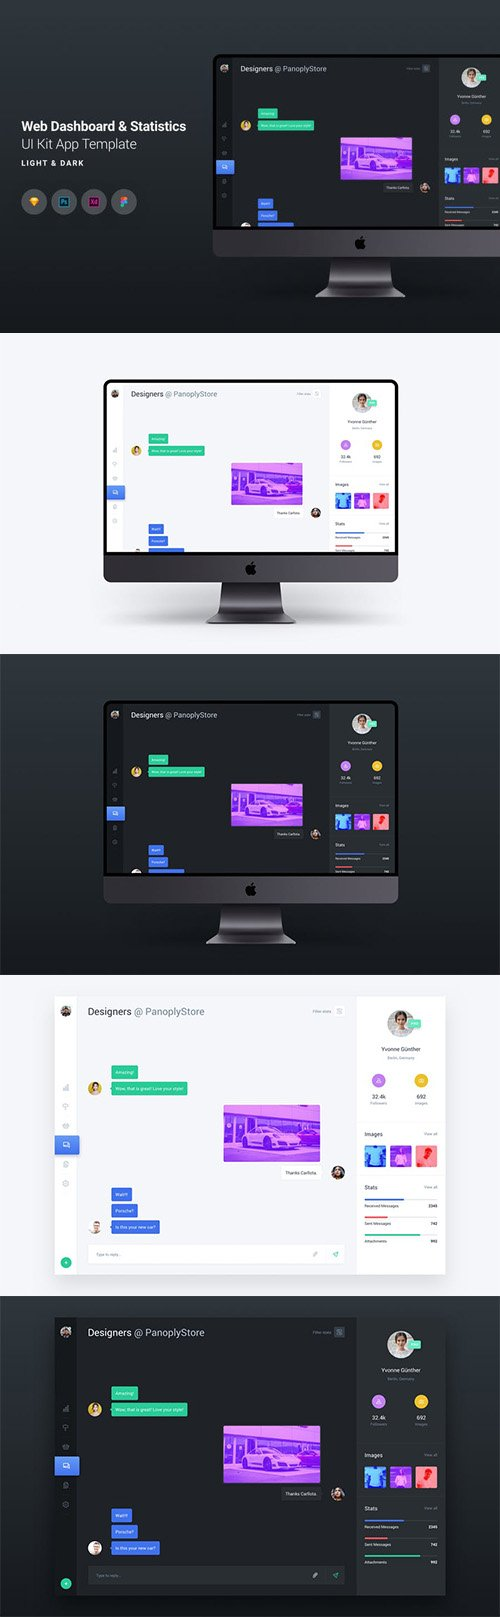 Web Dashboard & Chat UI Kit App Template 9